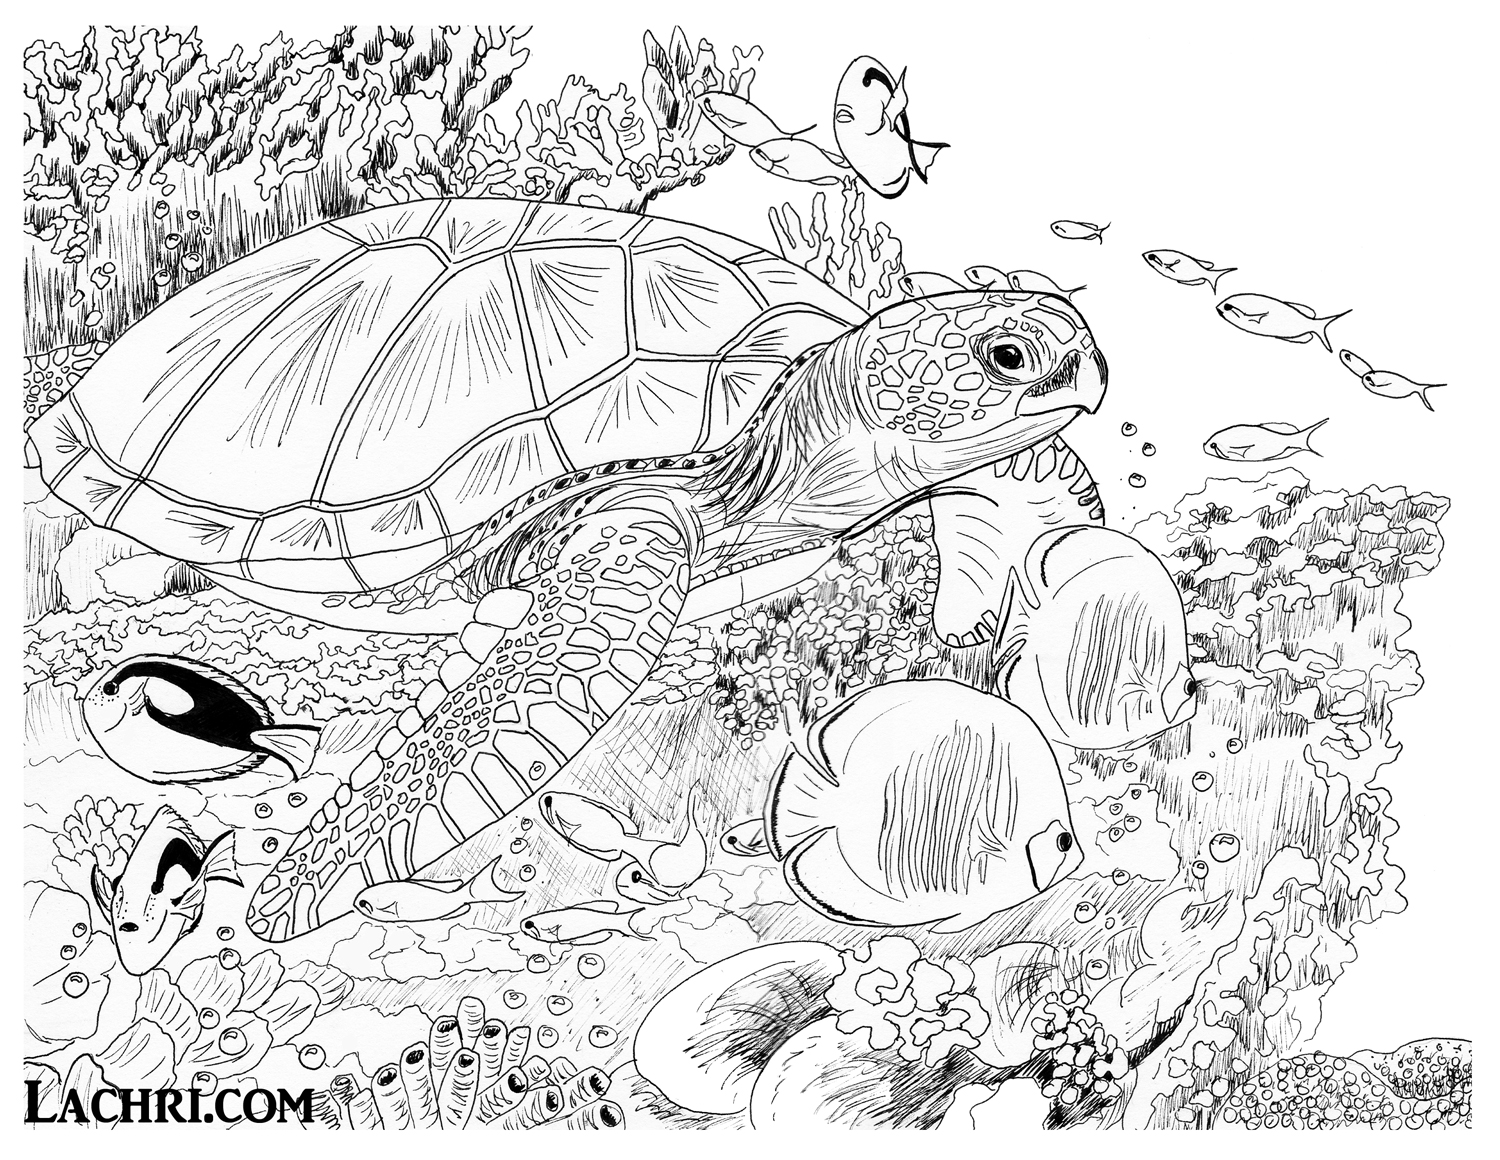 coloring pages for adults turtle turtles coloring pages for adults bestappsforkidscom coloring turtle pages adults for